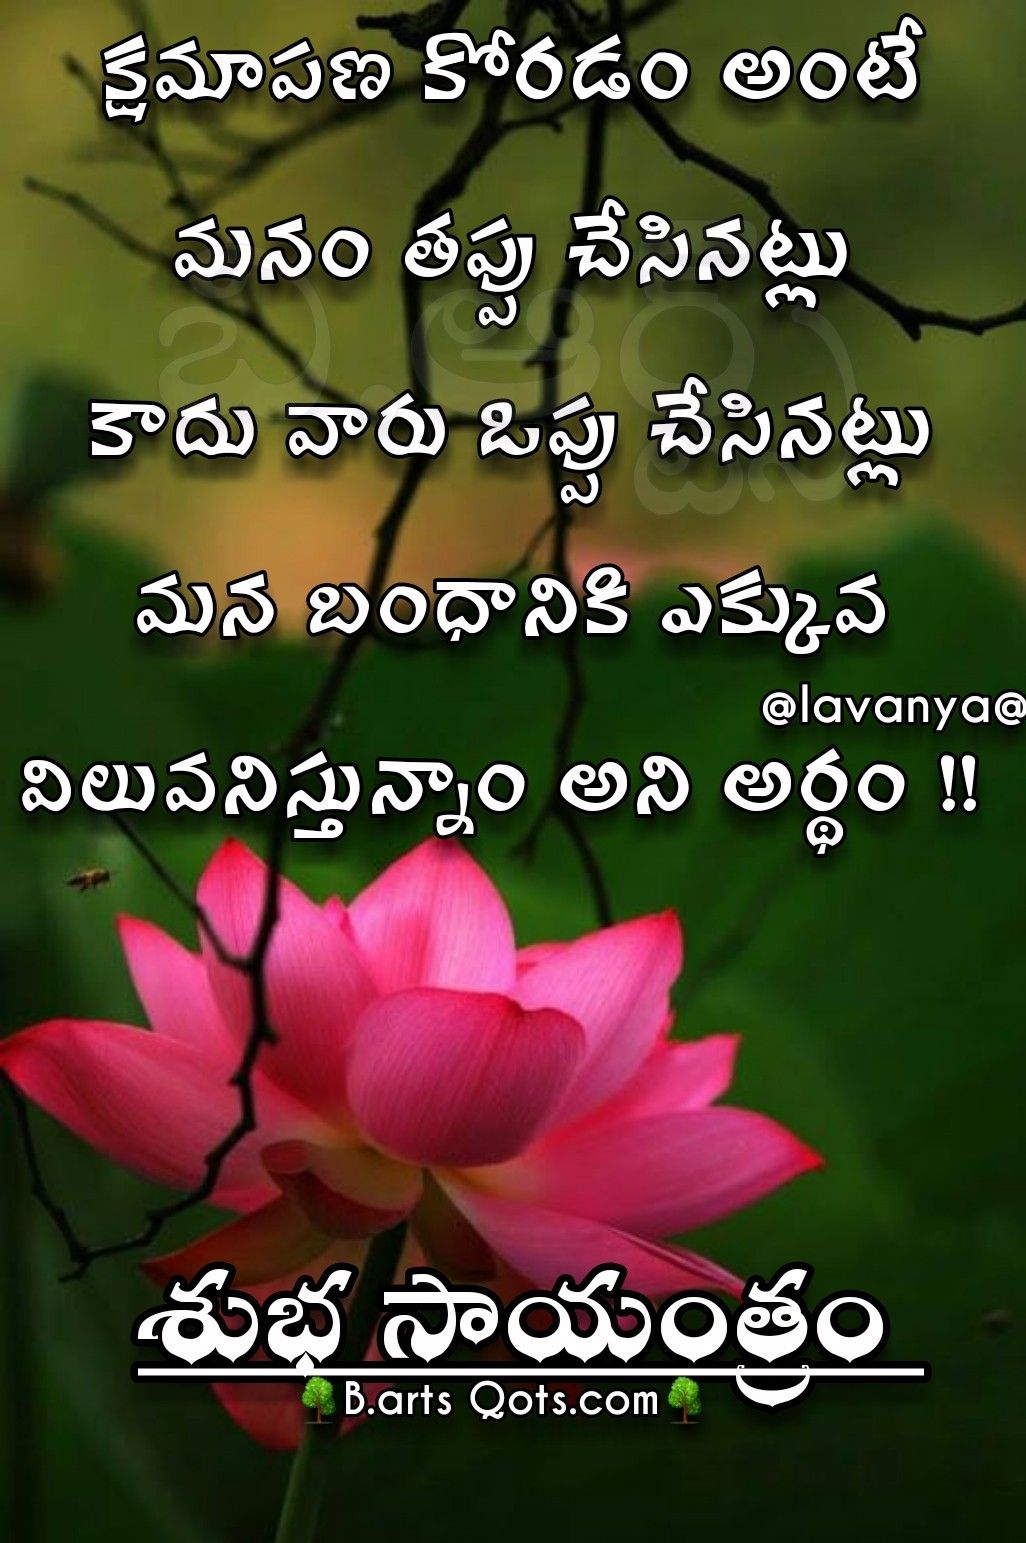 Pin By Aruna Majji On Good Evening Telugu Telugu Inspirational Quotes Good Advice Quotations